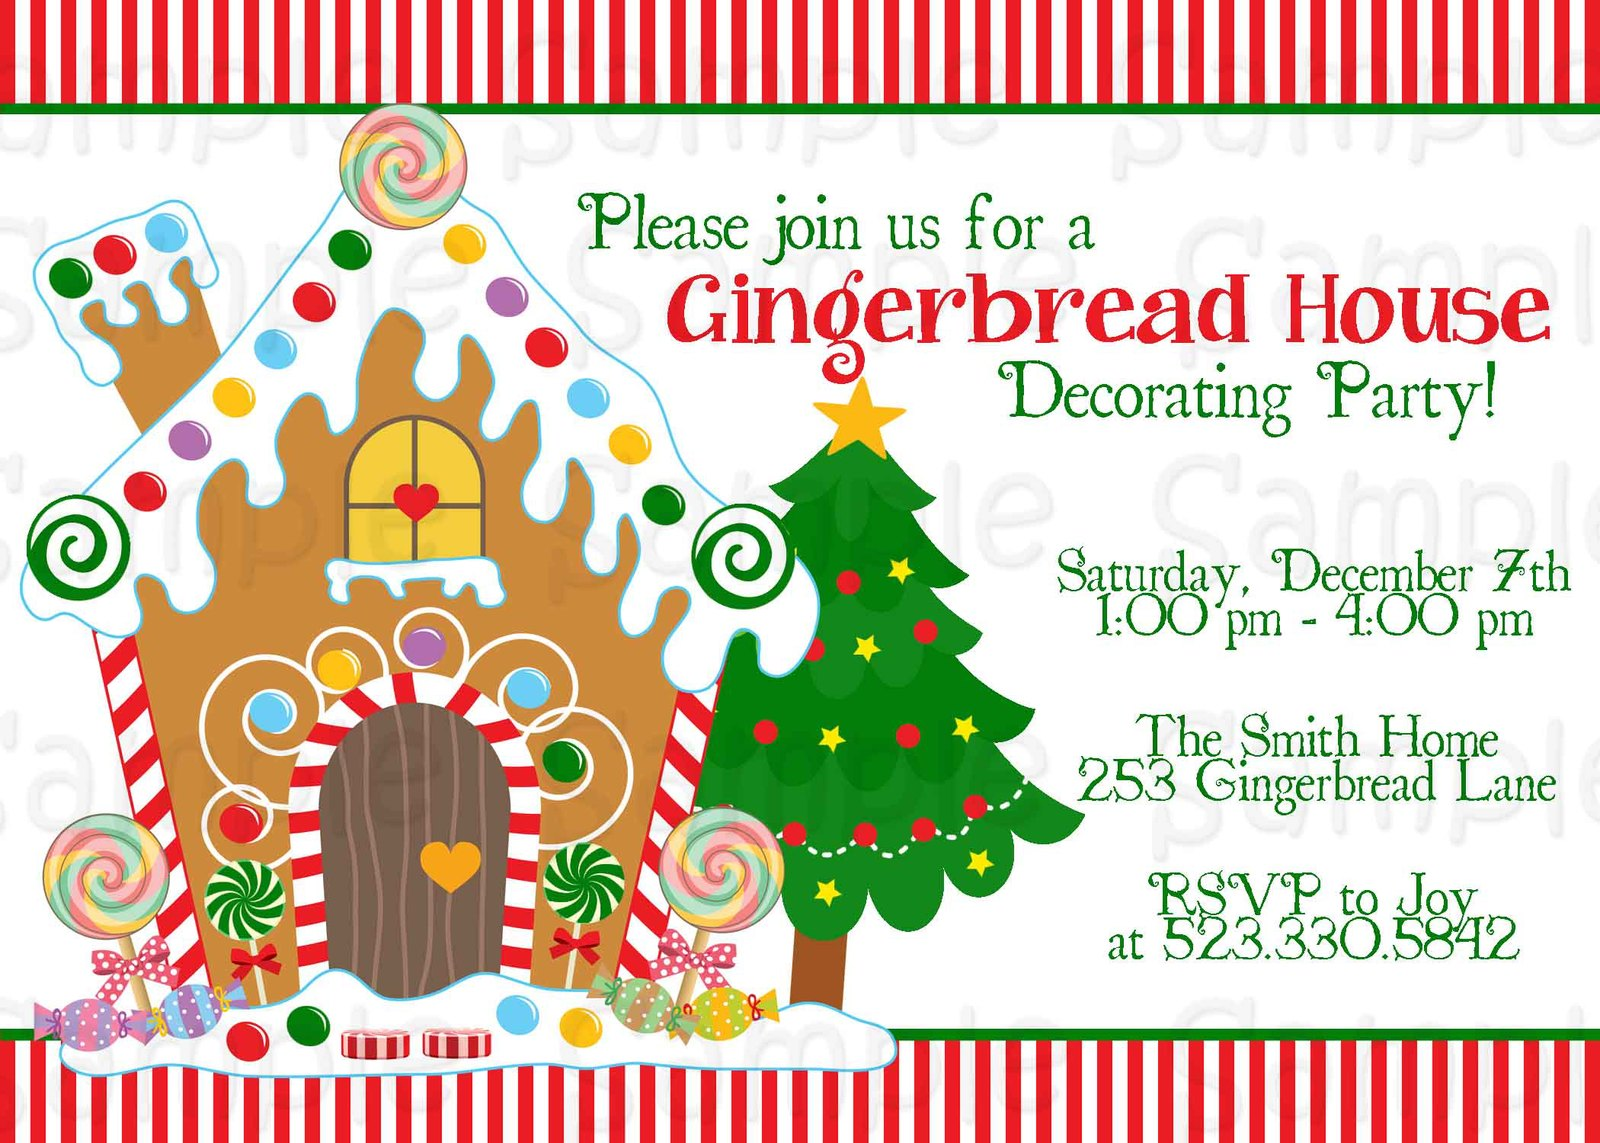 Gingerbread Party Invitations Images Reverse Search – Gingerbread Party Invitations